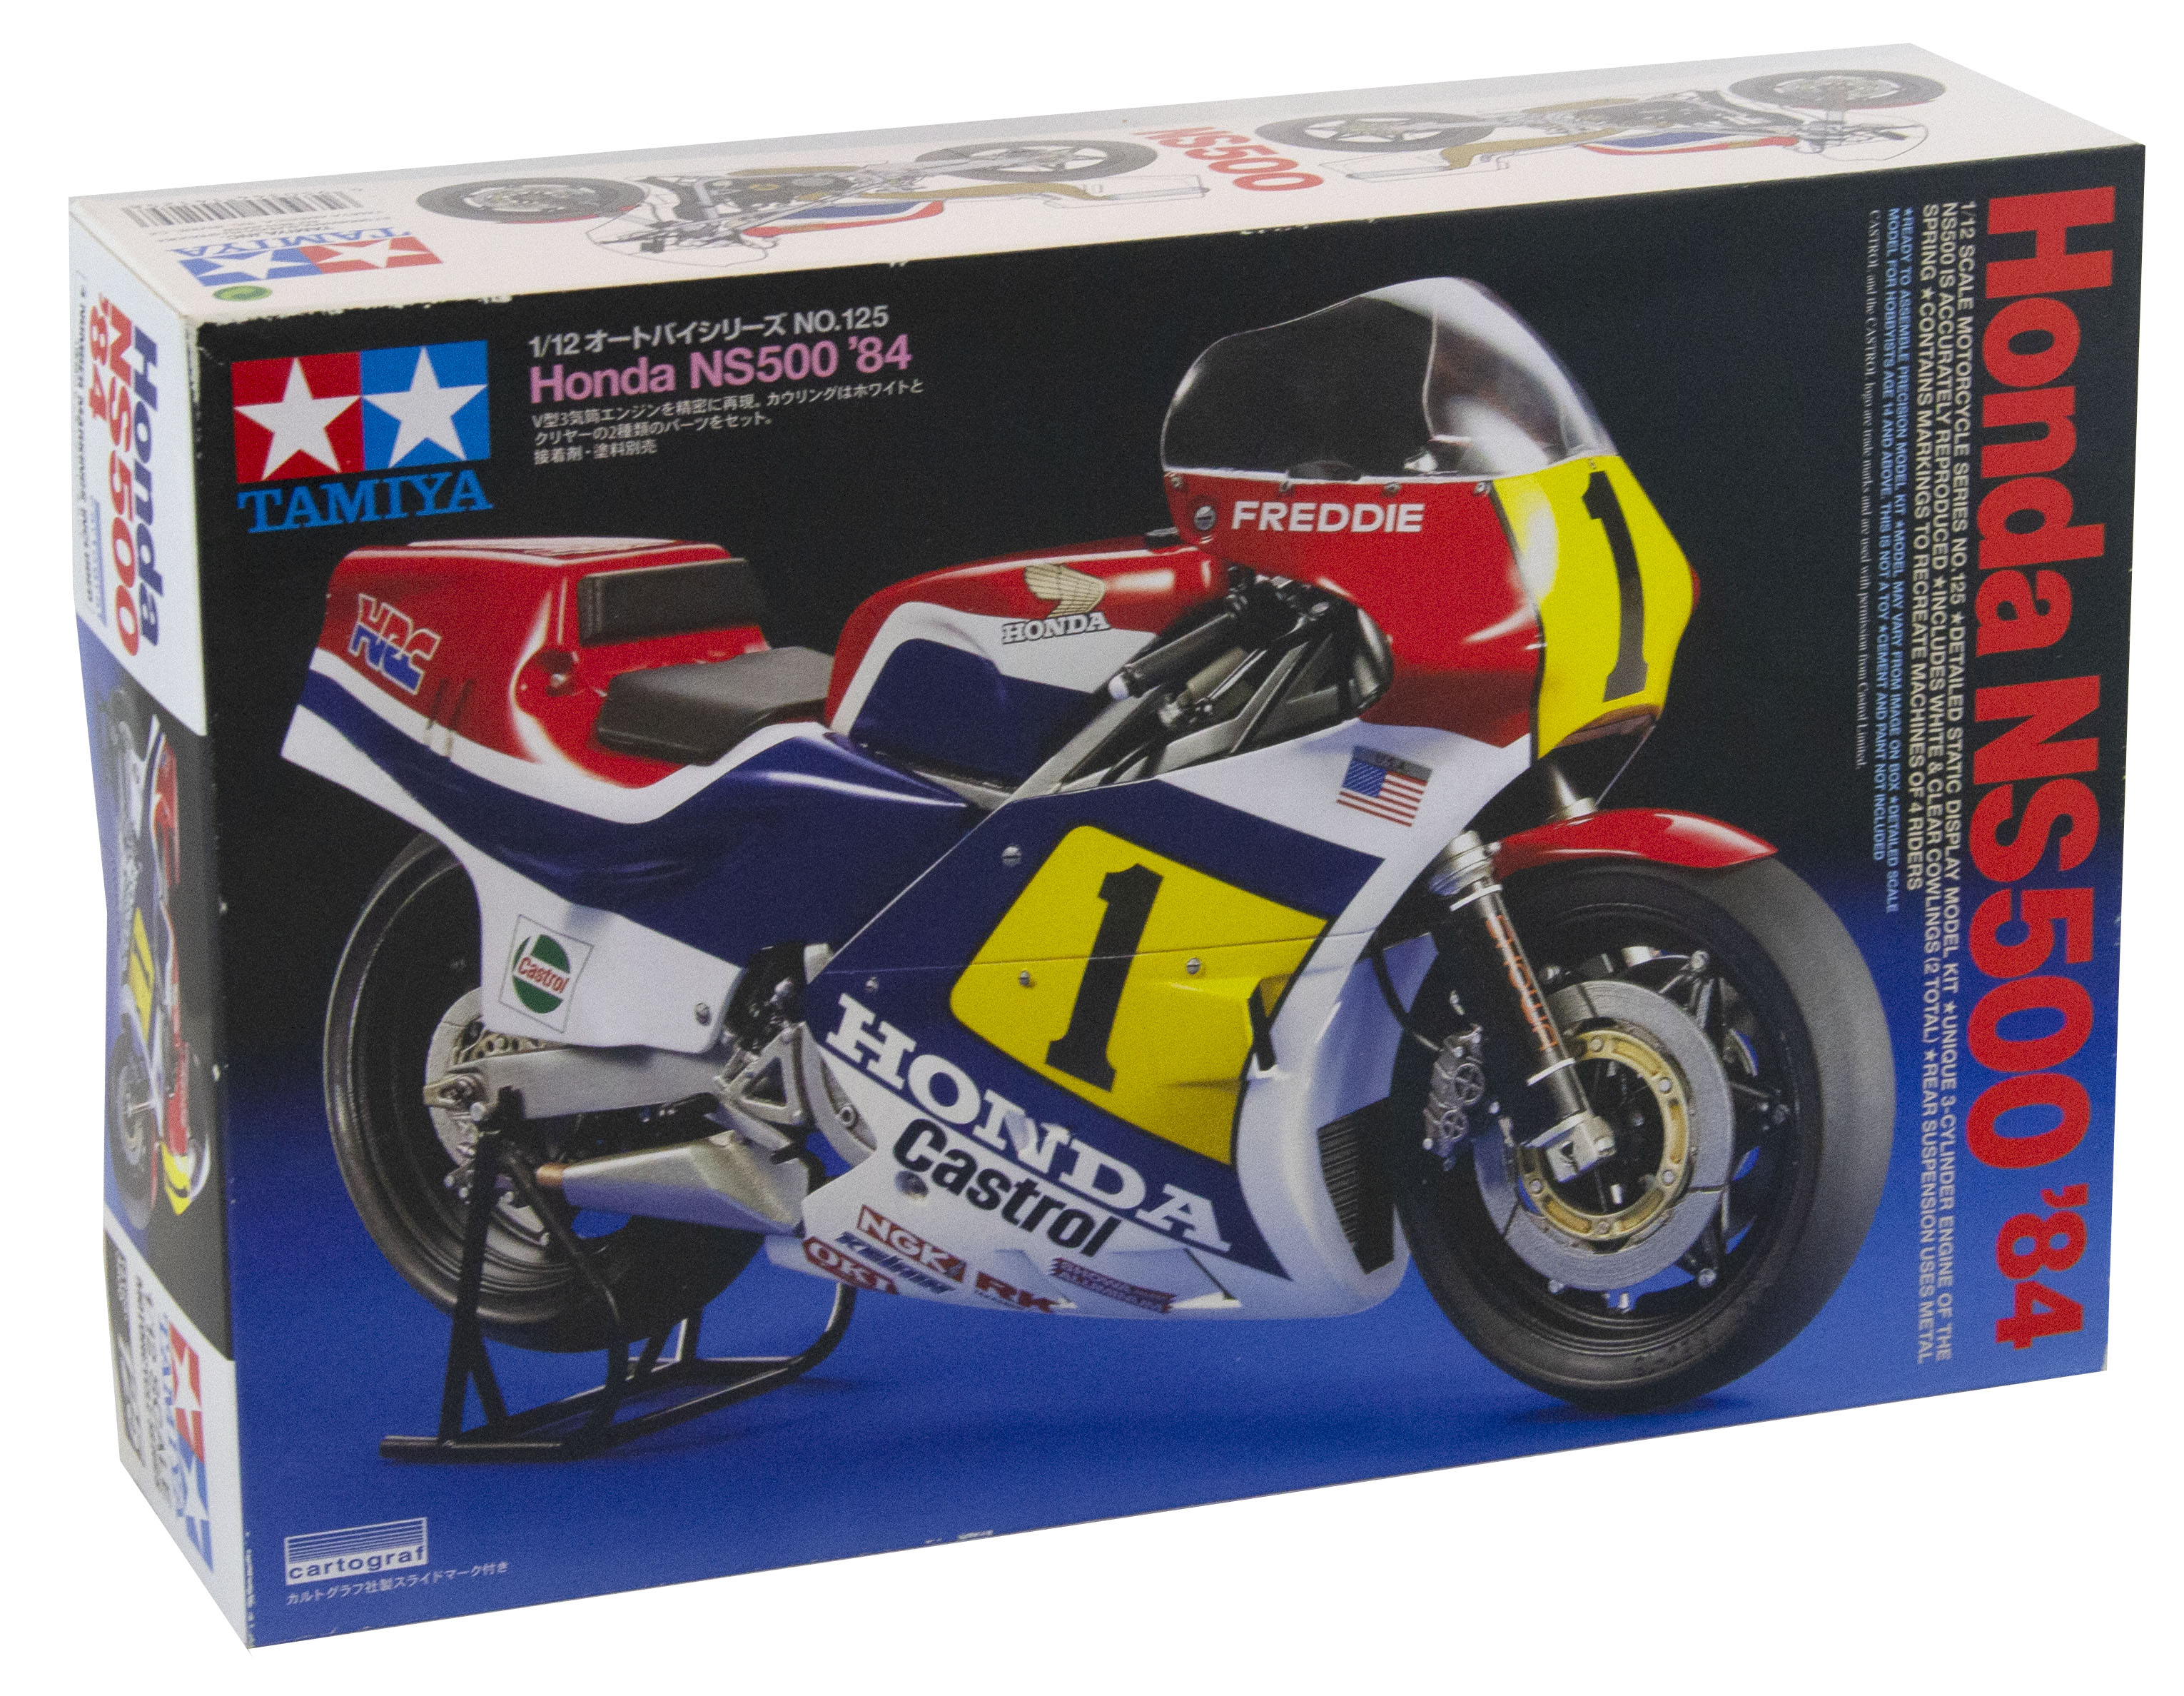 Kit Bike Honda Ns500 1984 1/12